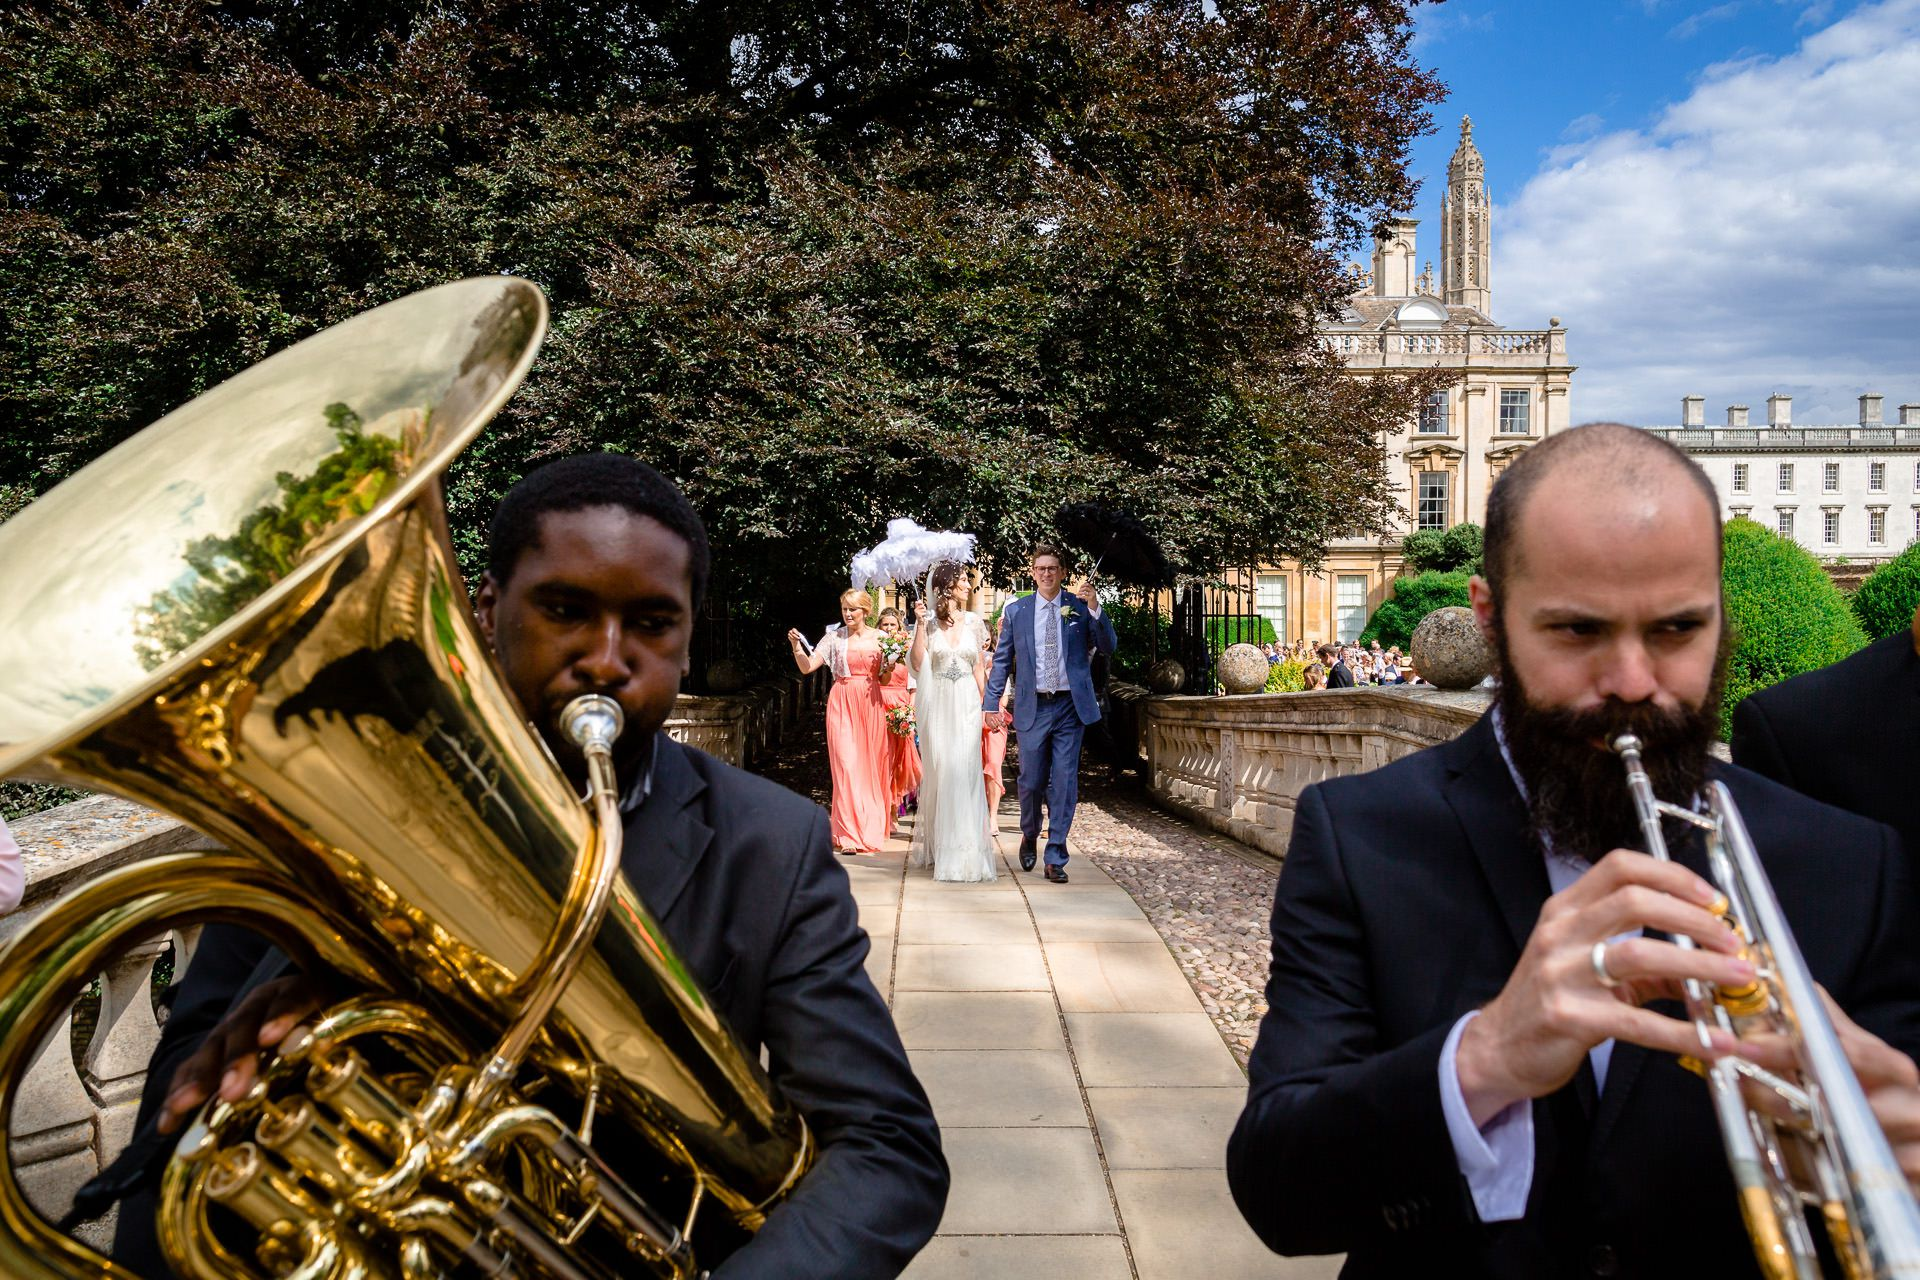 musicians and the married couple on the background